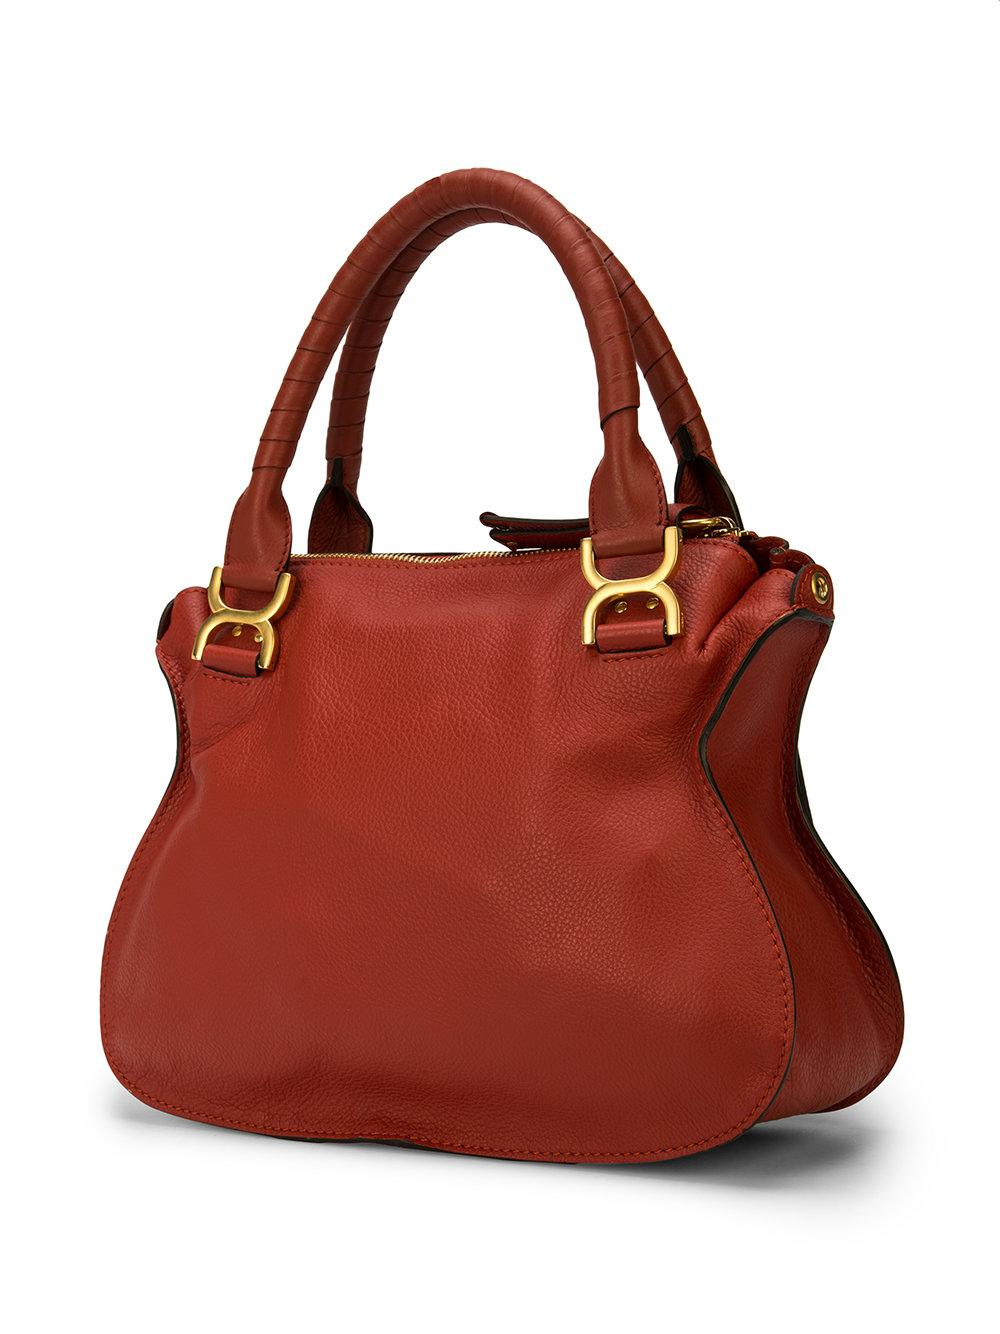 Chloé Leather Marcie Tote in Red